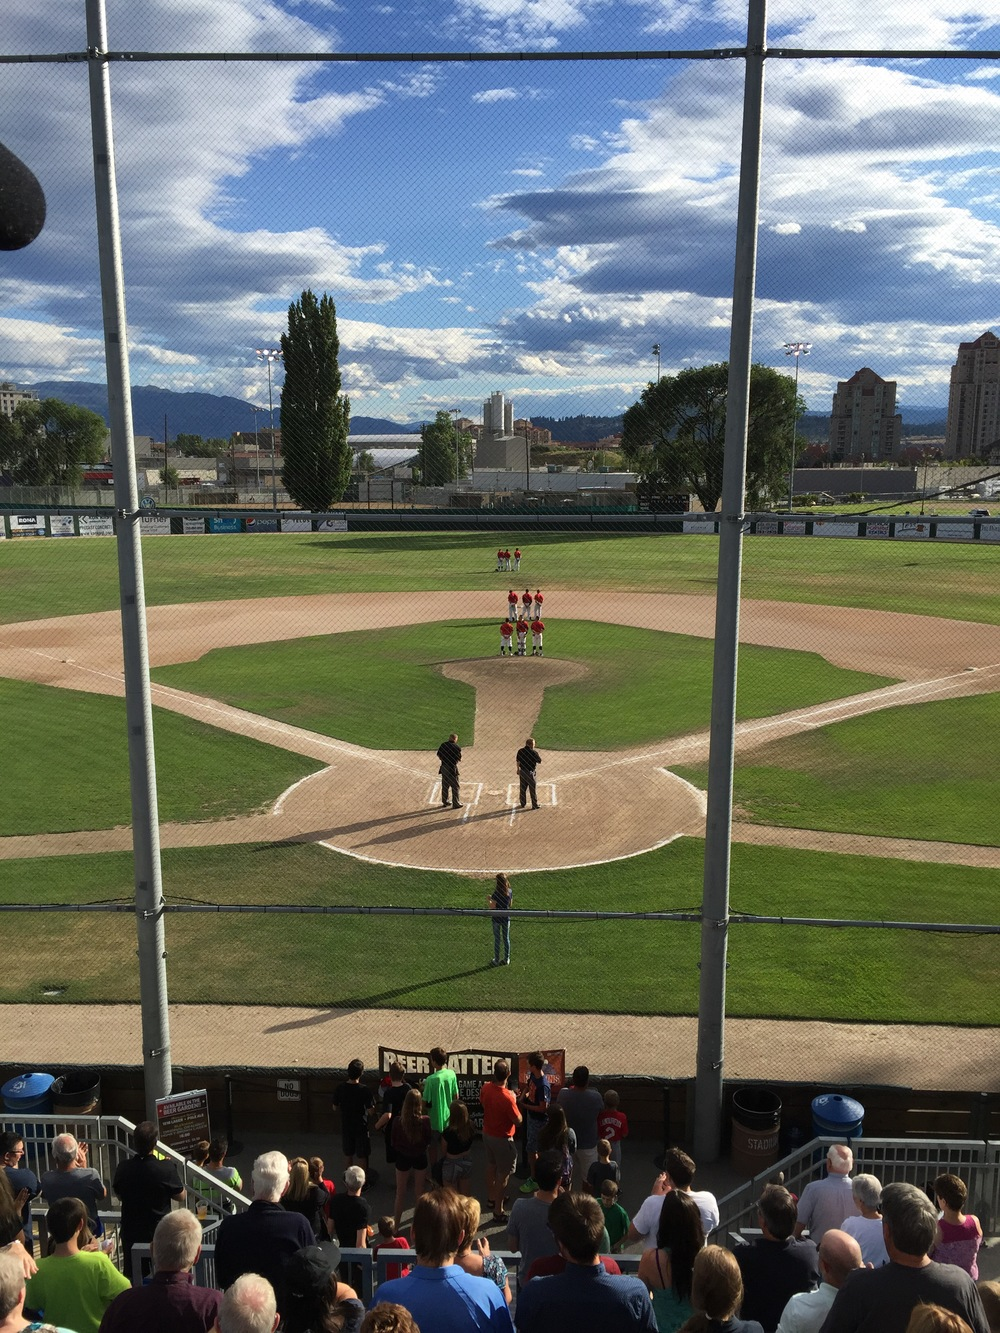 The AppleSox are going for their third win of the season at Elks Stadium, and fifth in the season series against Kelowna, Wednesday night,